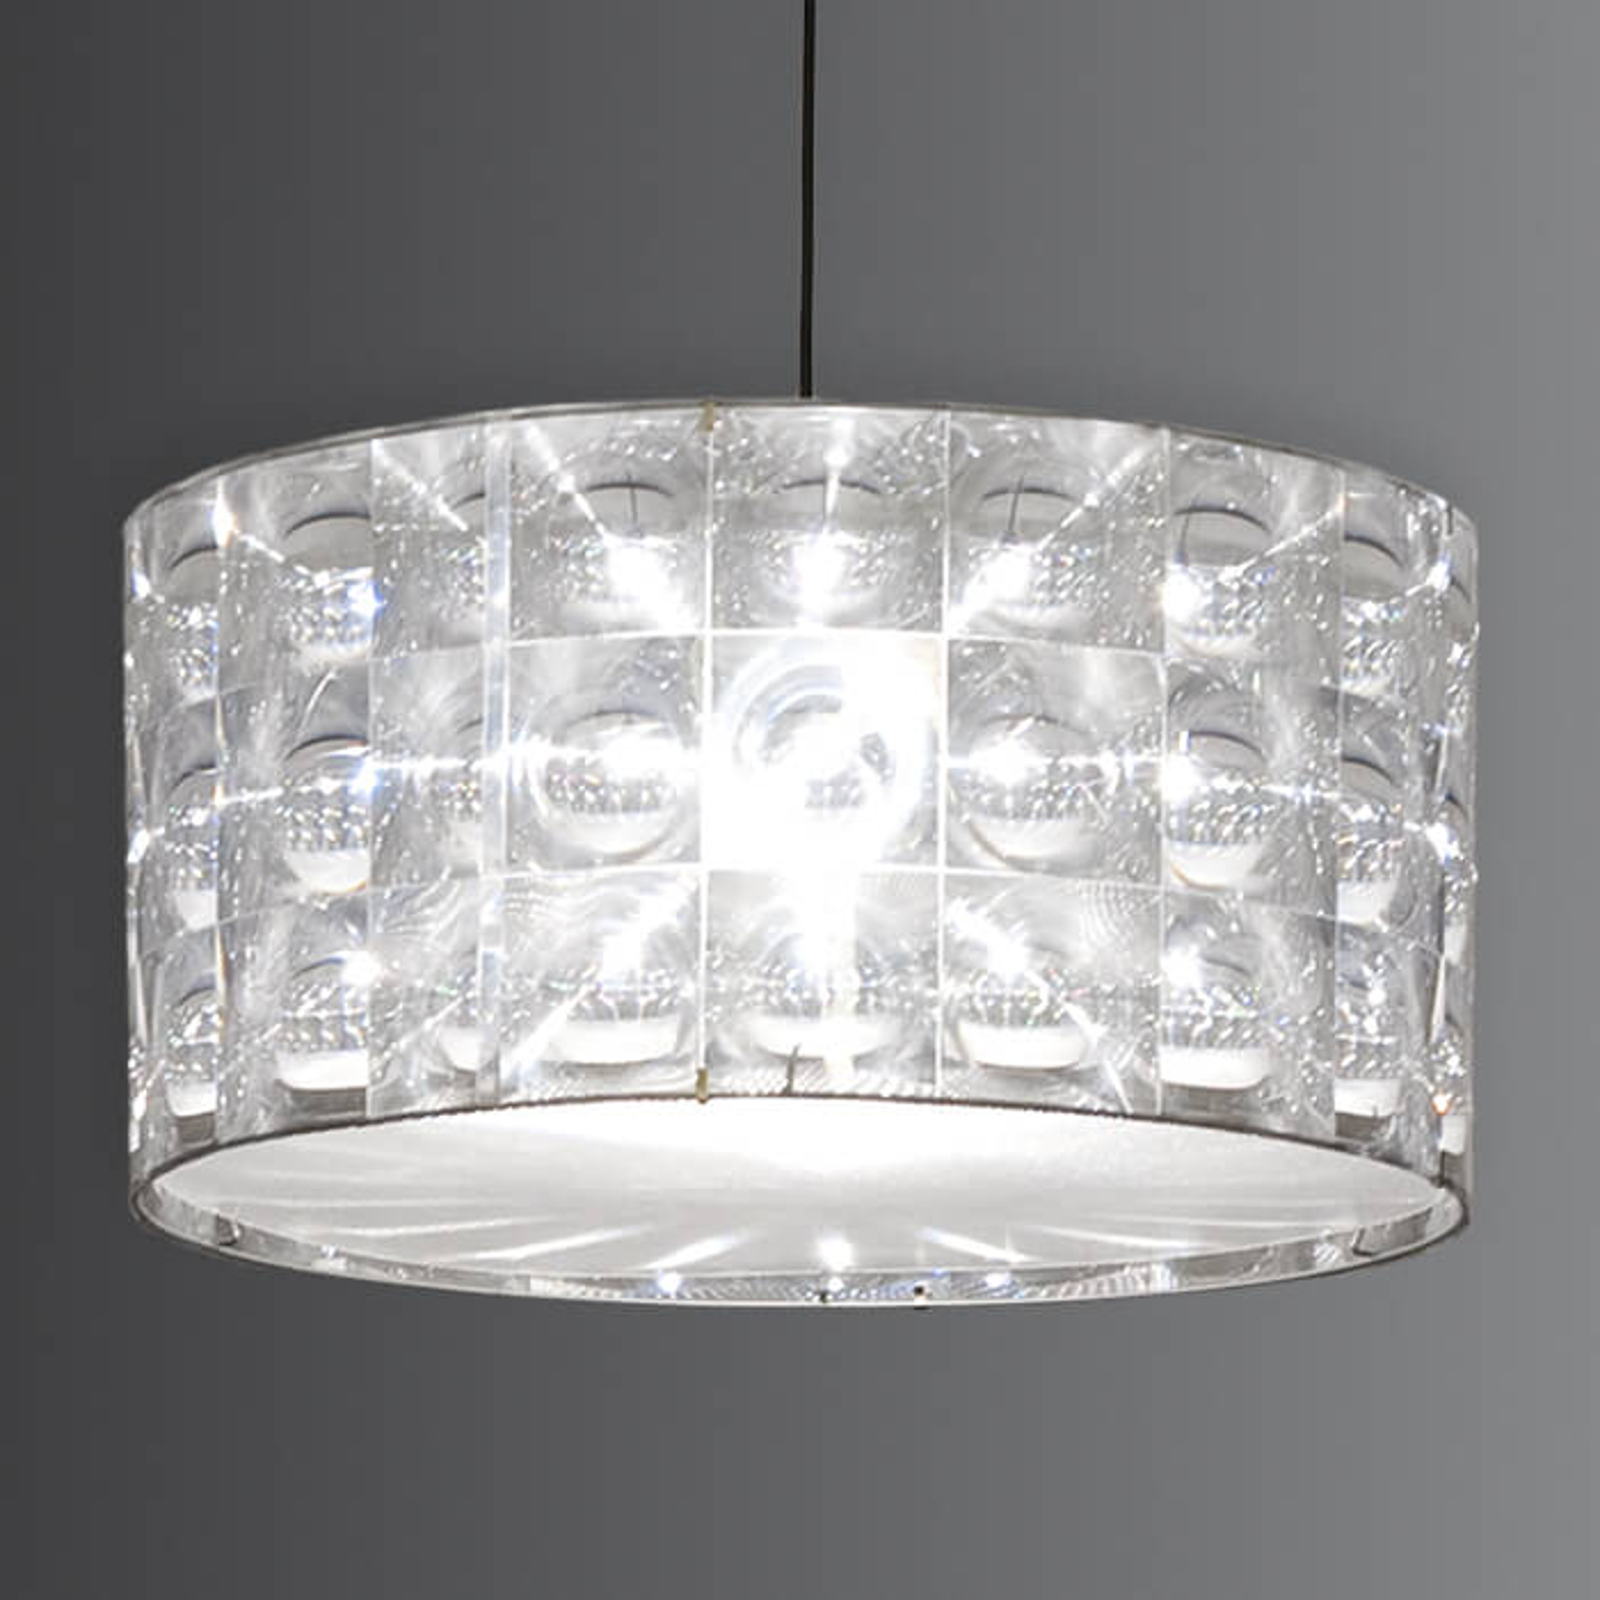 Innermost Lighthouse - suspension 60x30